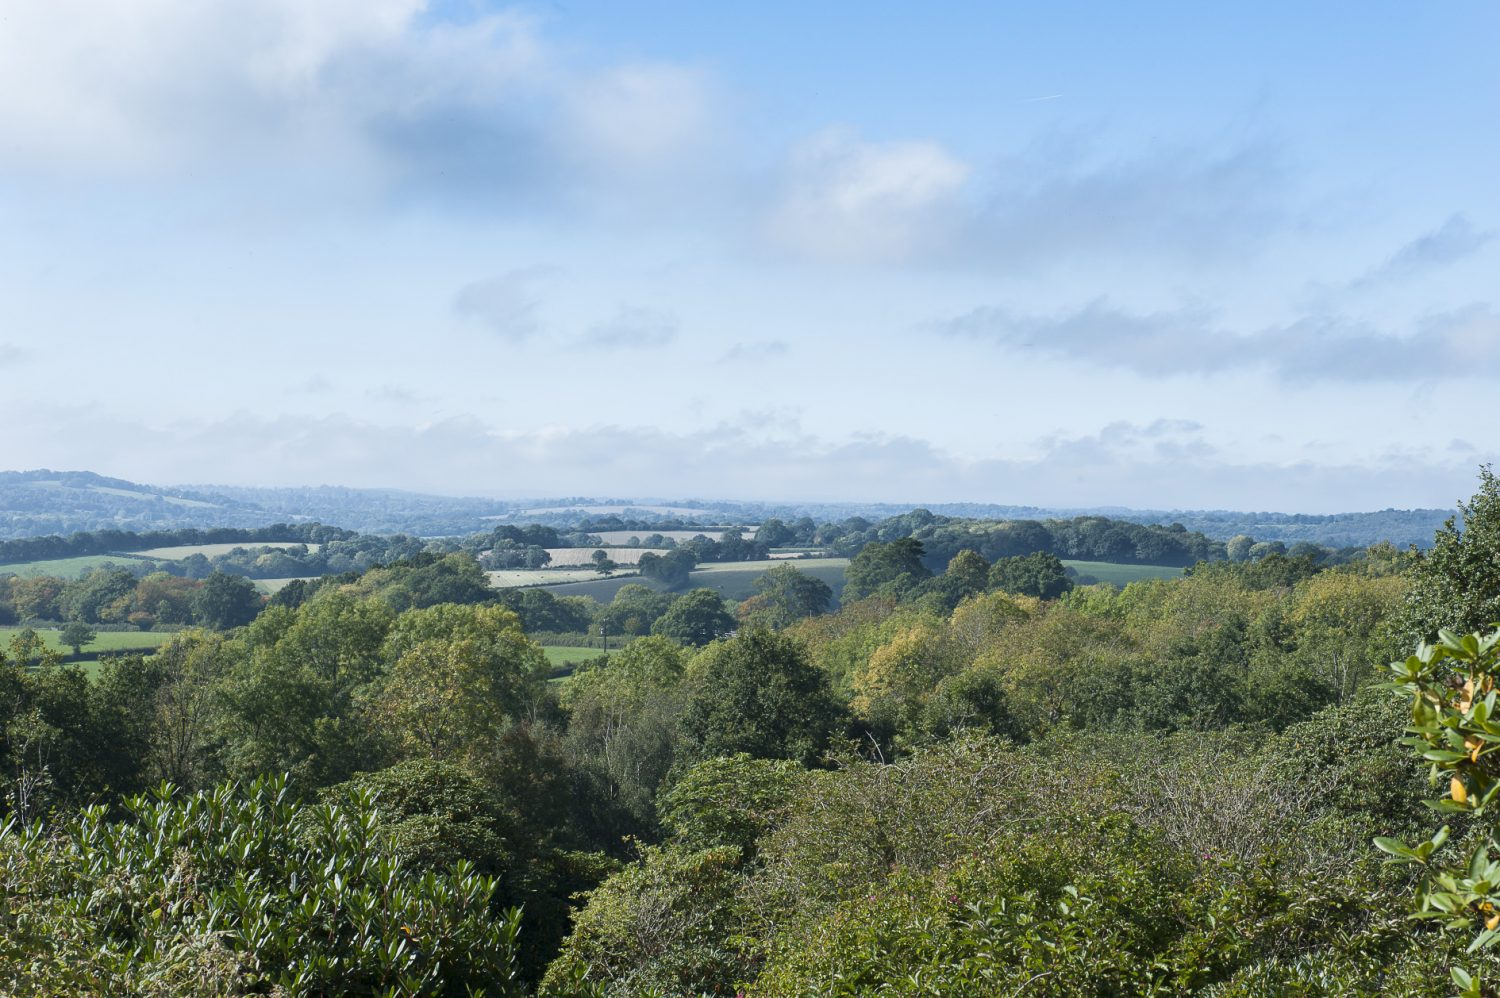 The cottage features breathtaking views over the surrounding countryside and across the idyllic garden